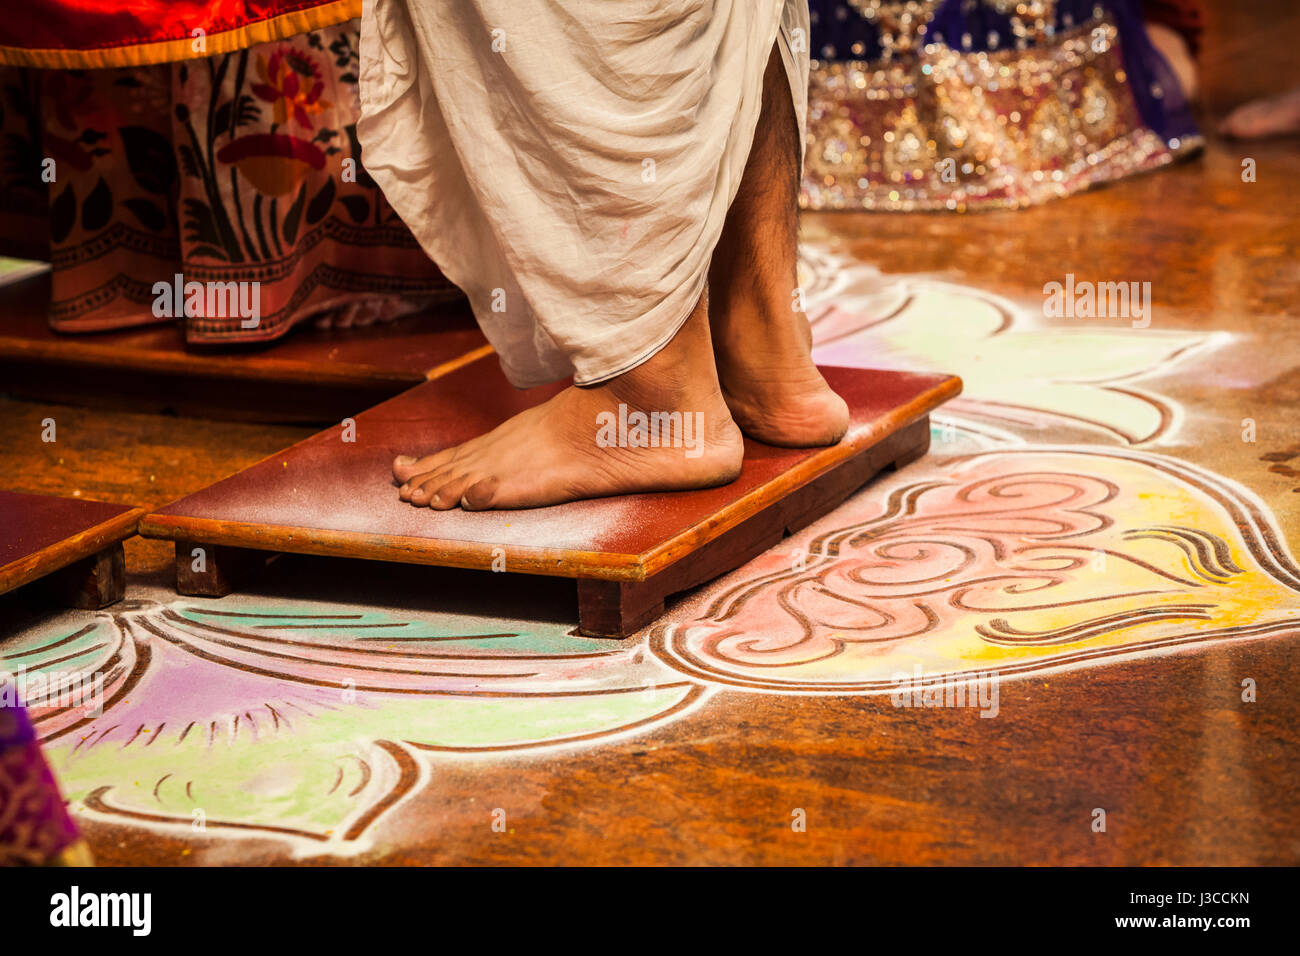 A man's bare feet during his wedding, Pune, India. - Stock Image